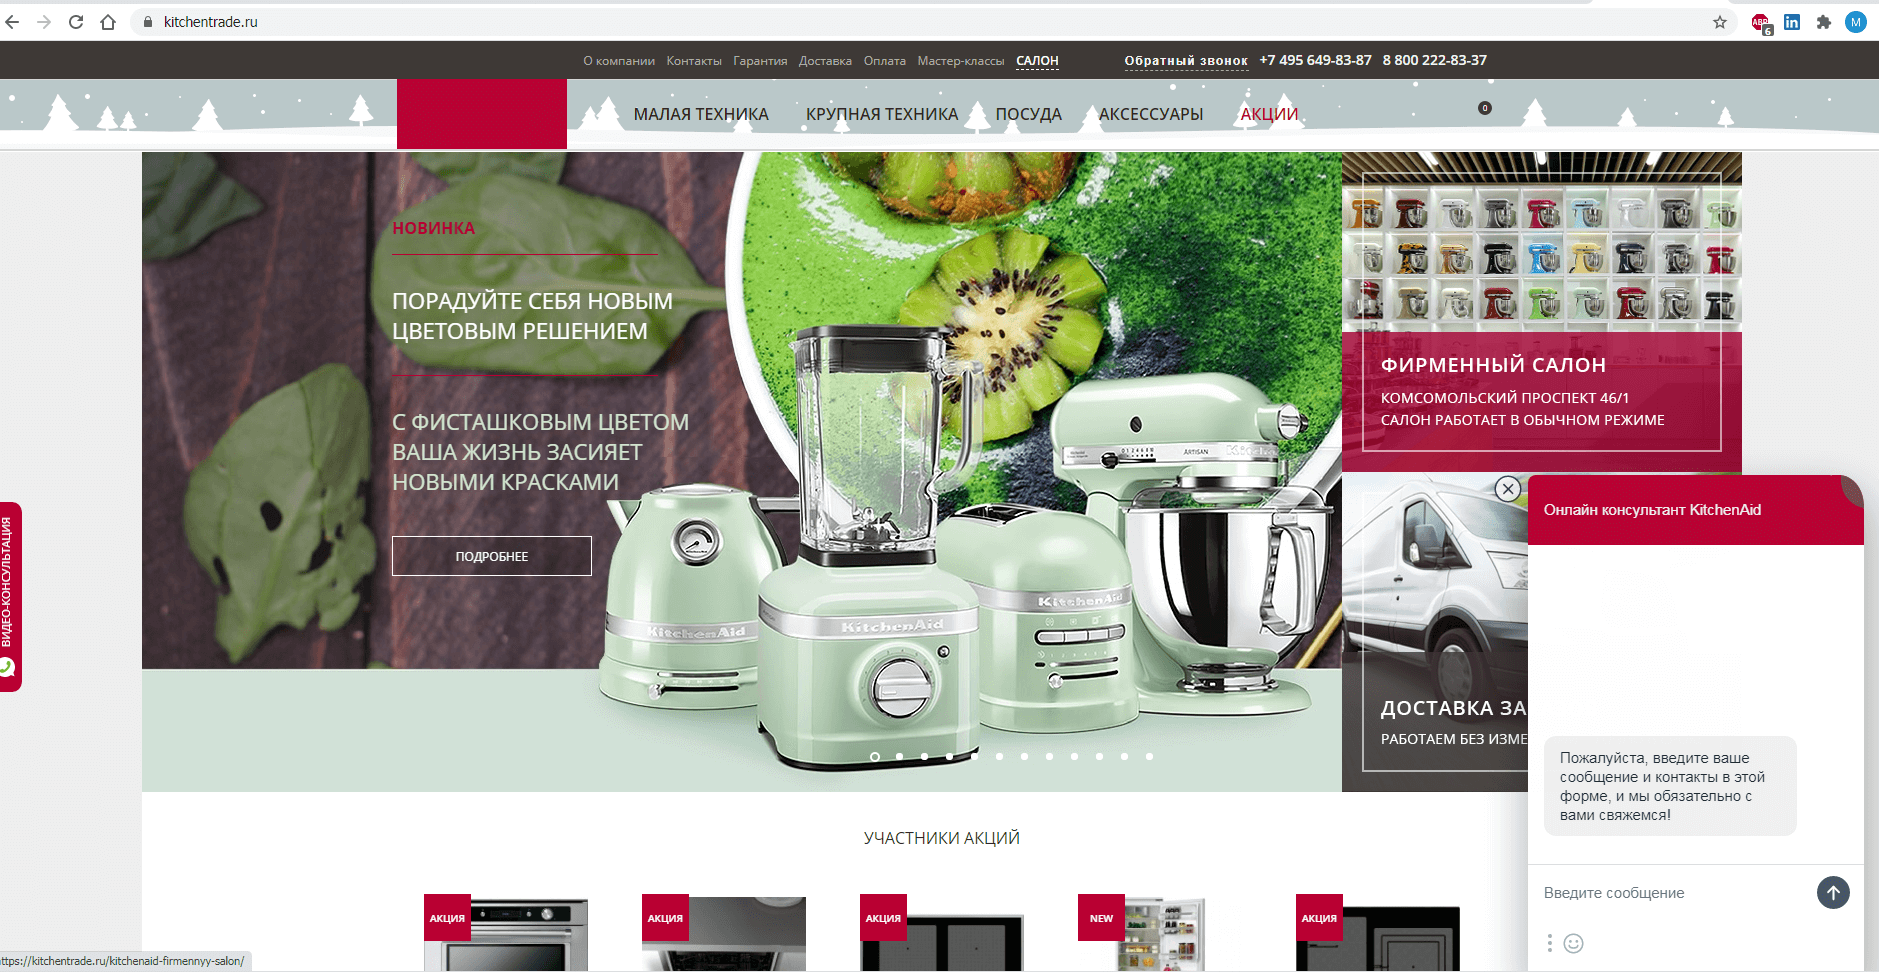 kitchentrade.ru website